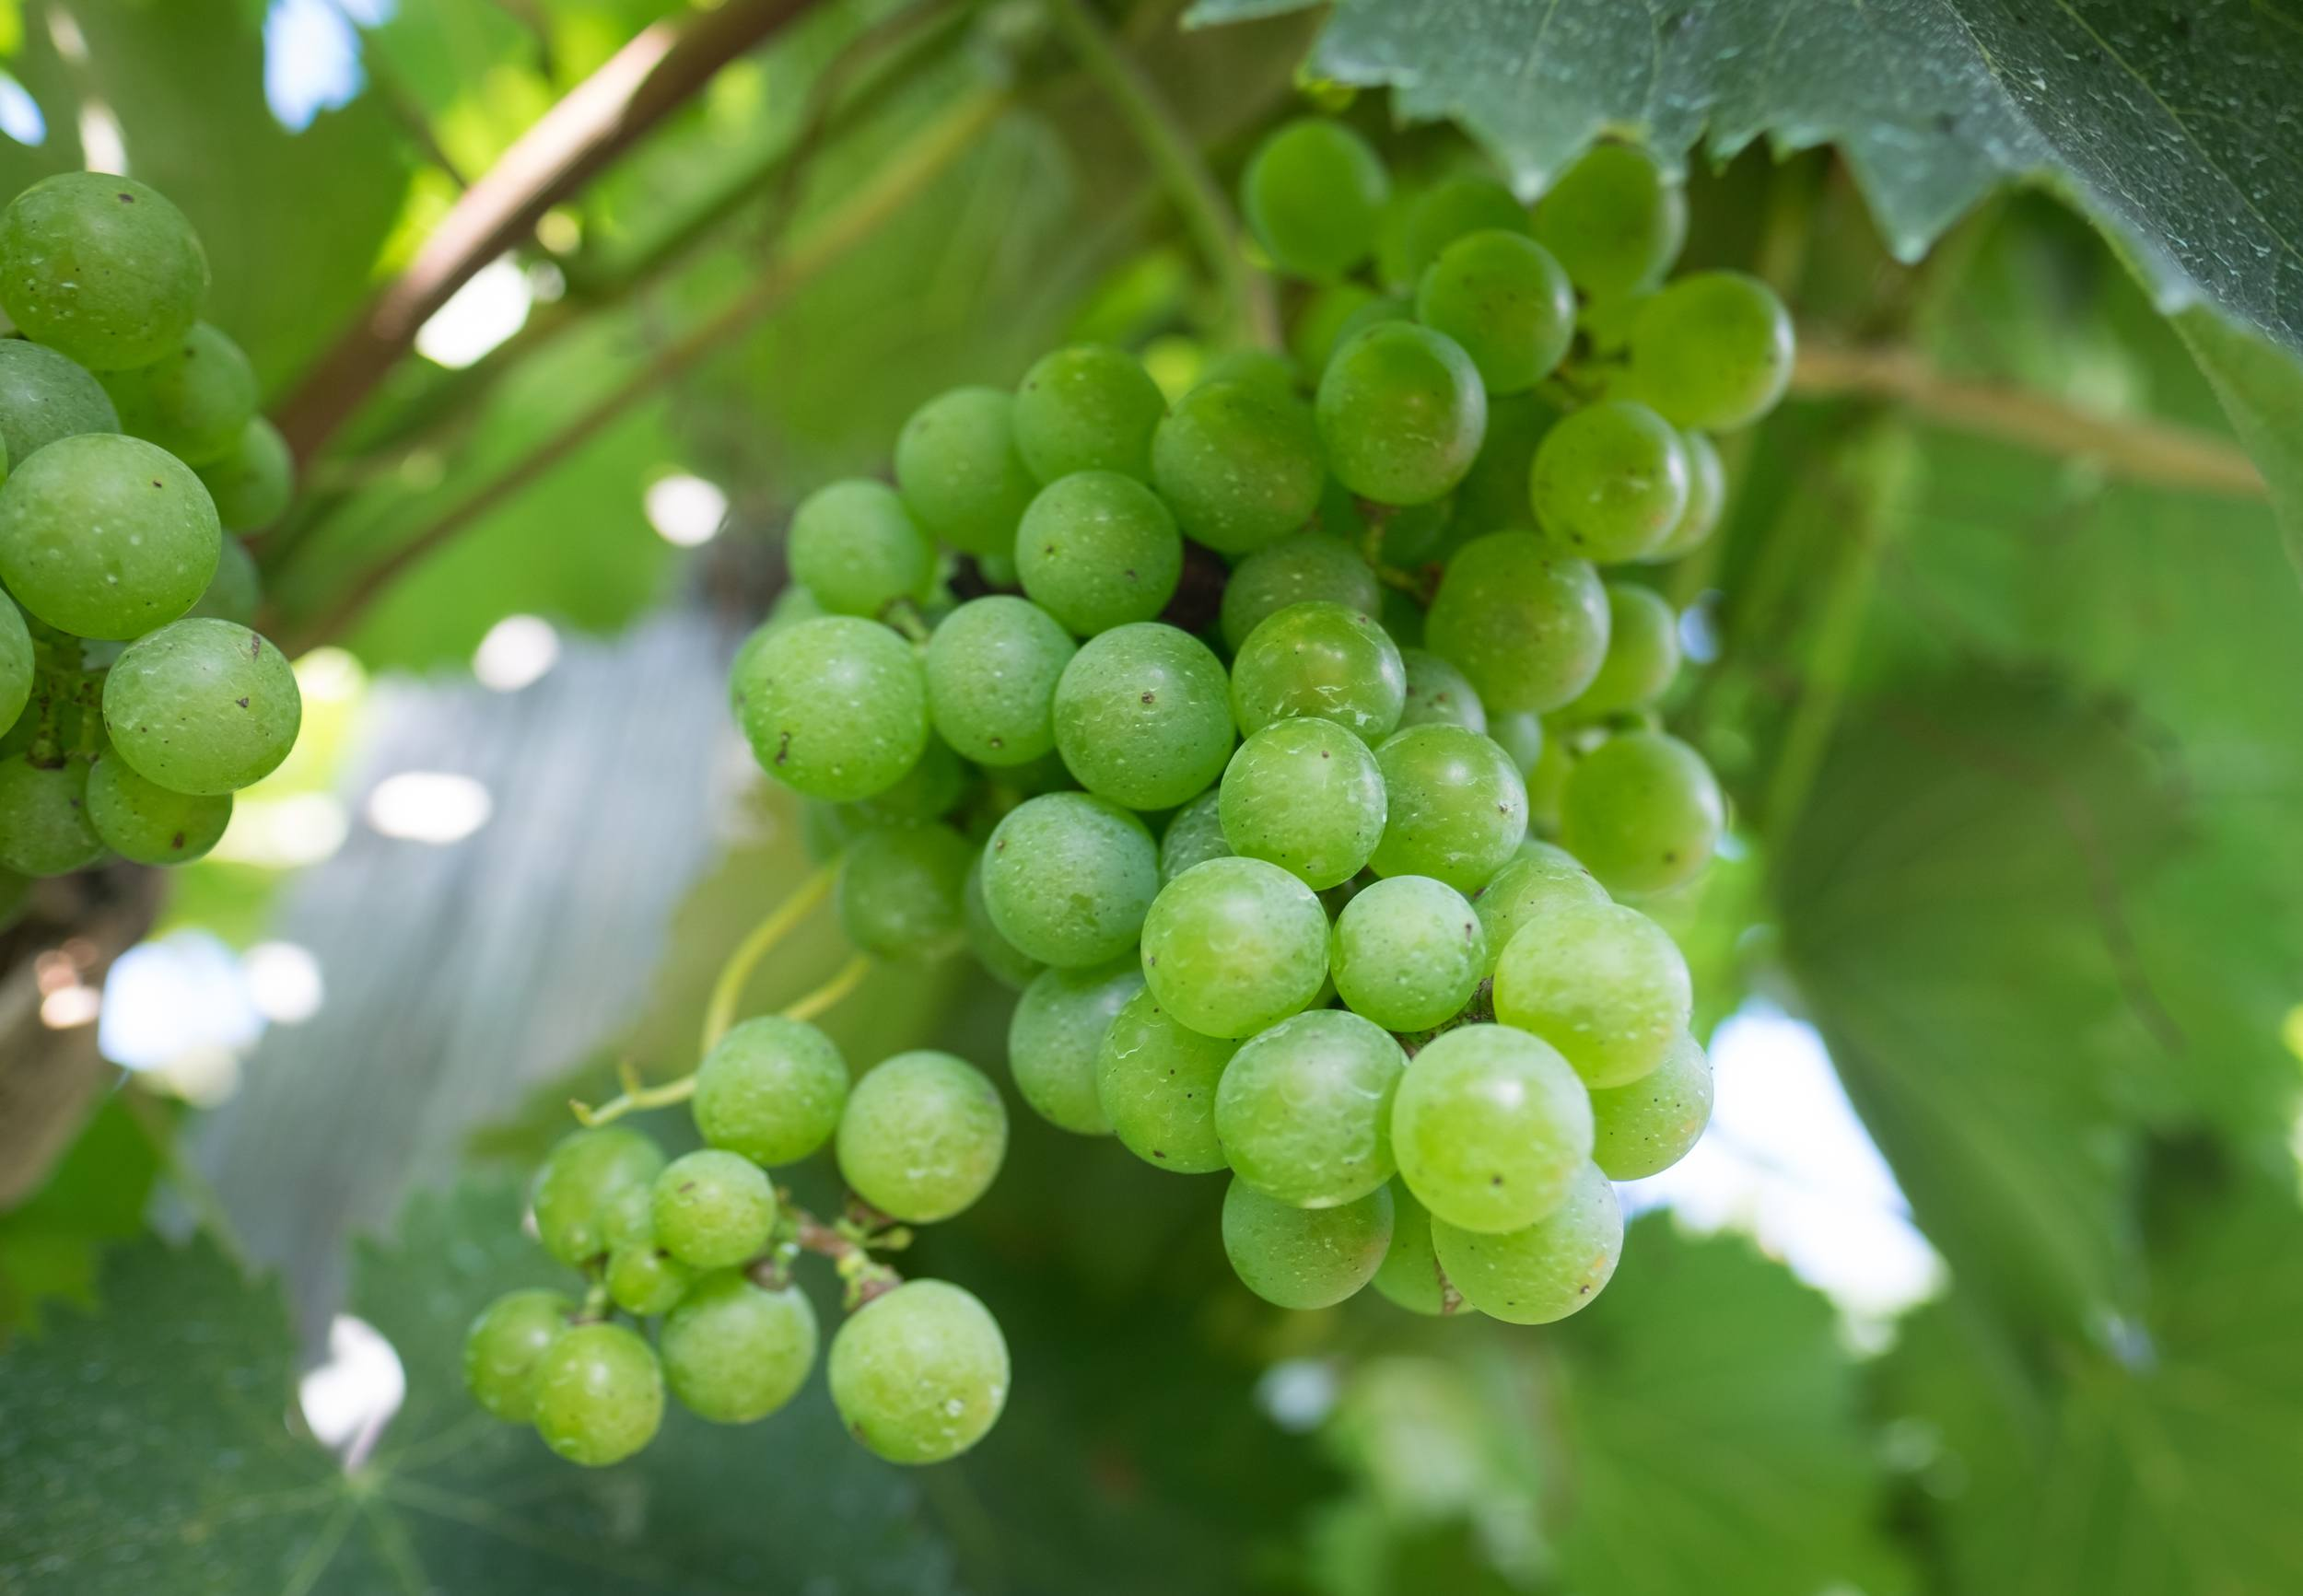 Green grapes nestled among green leaves on a vine.